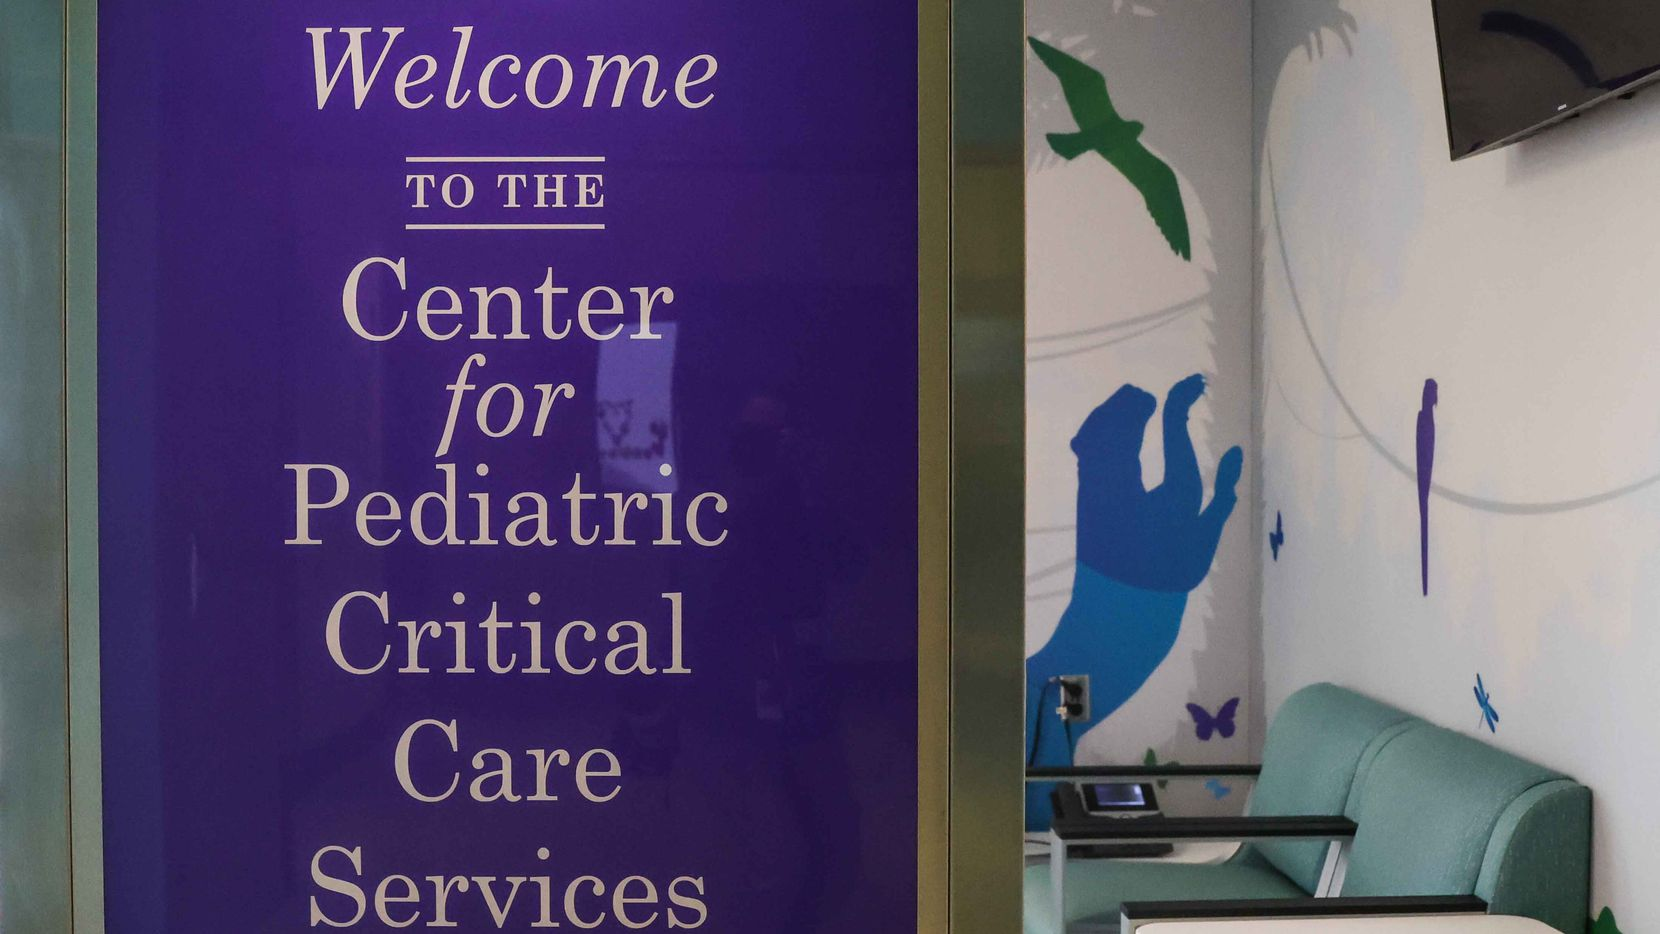 Entrance of the Children's Medical Center's pediatric intensive care unit in Dallas on Friday, August 13, 2021.